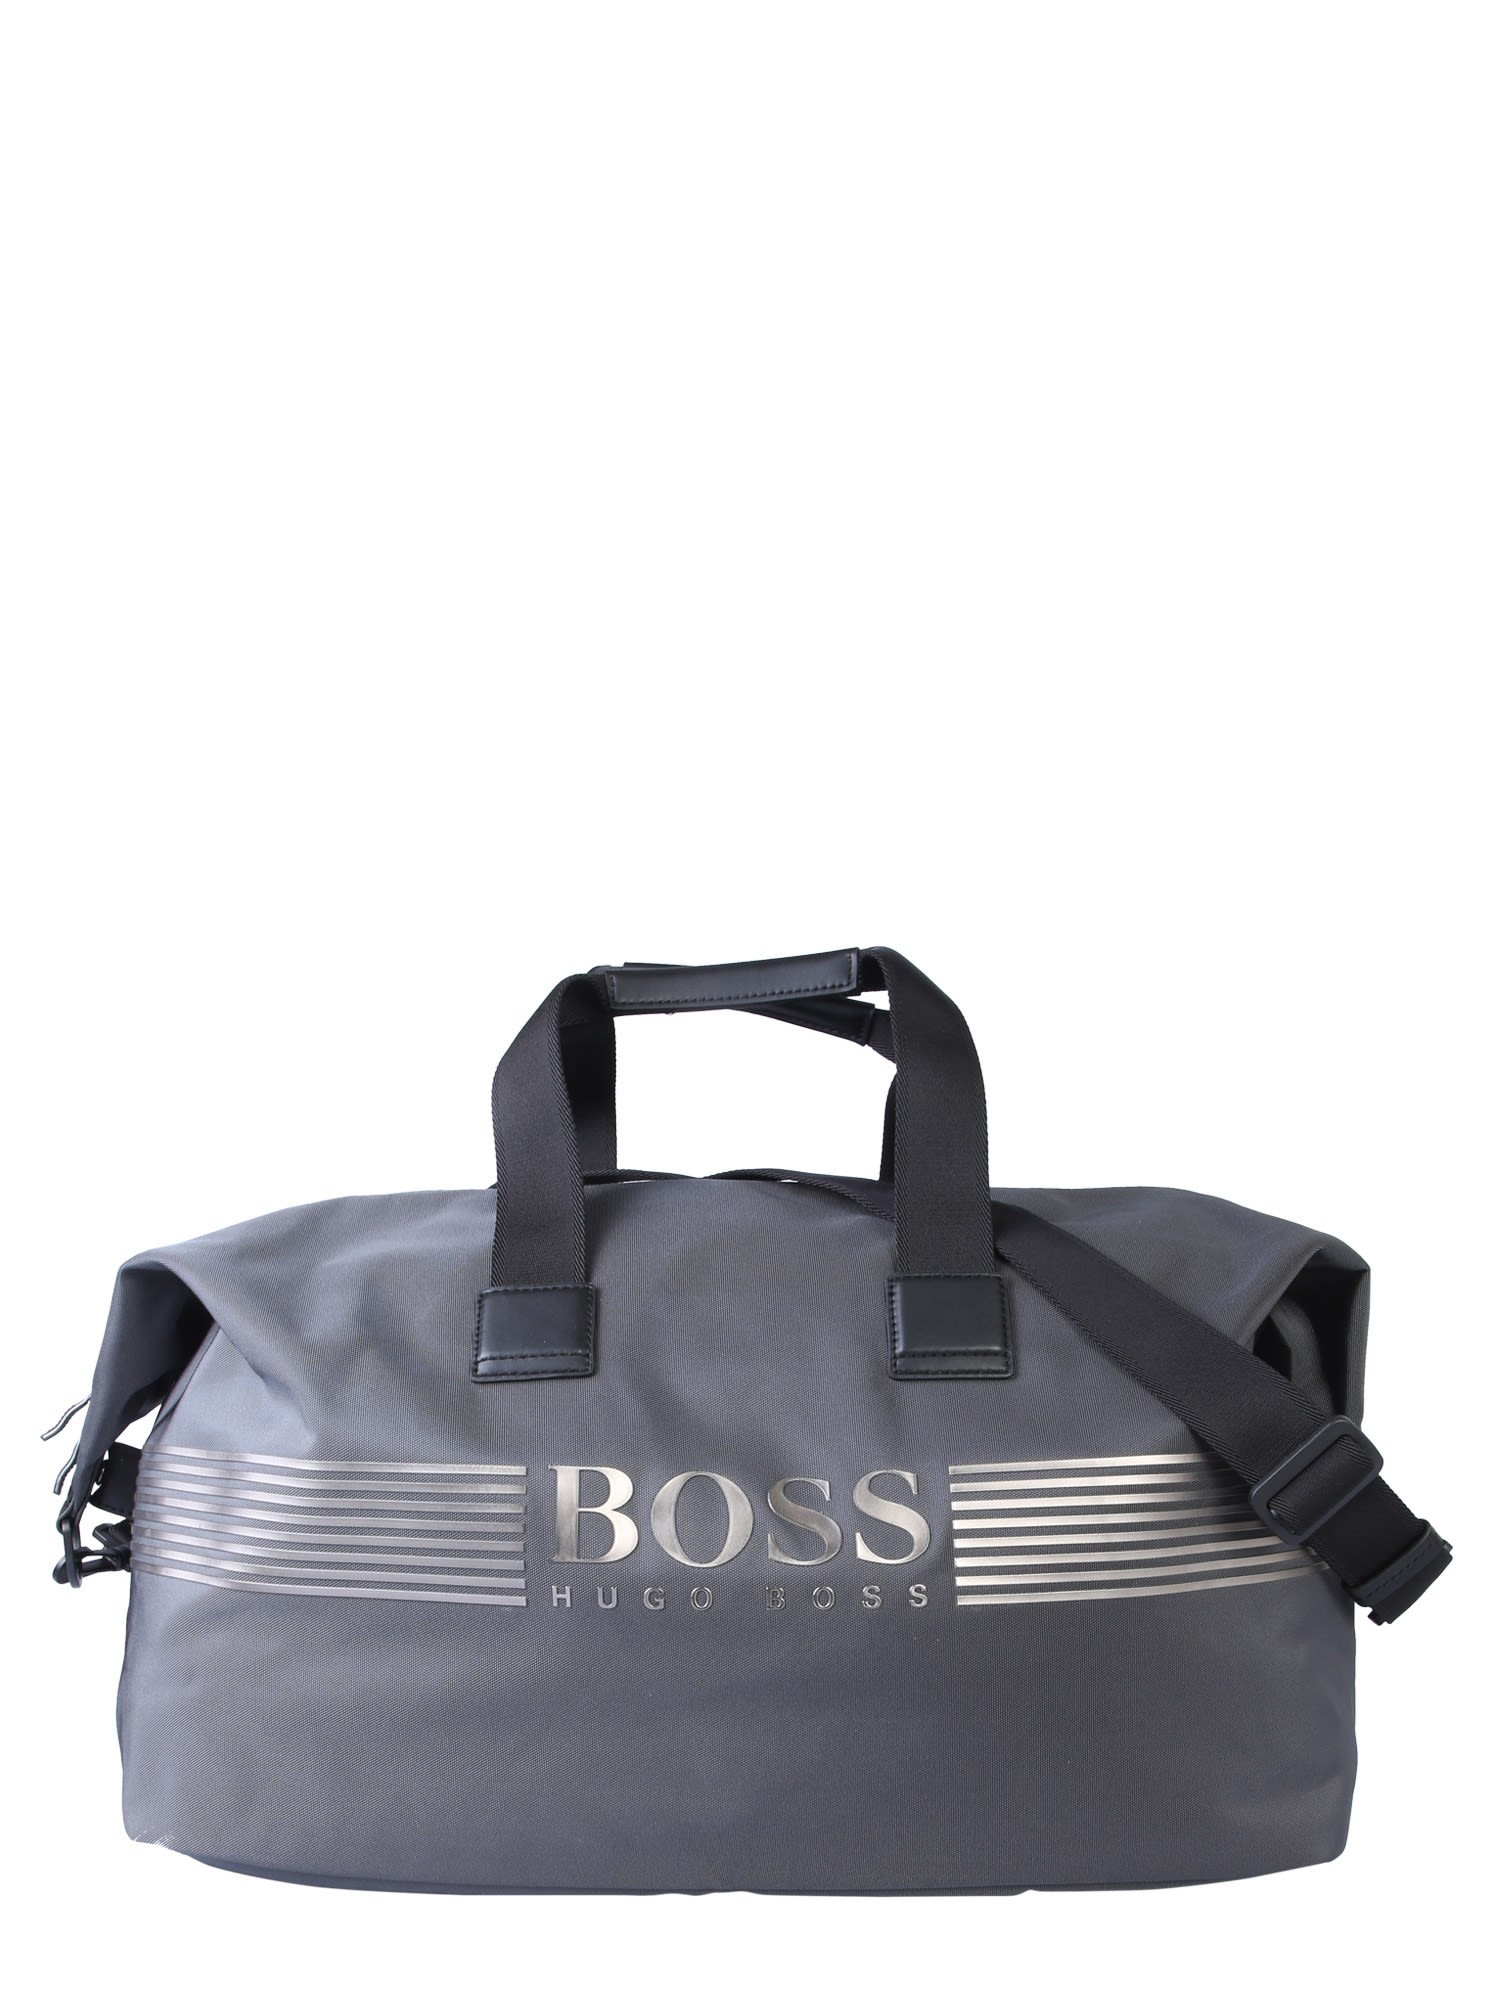 new products big discount sold worldwide Hugo Boss Hugo Boss Pixel Bag - GRIGIO - 11080638 | italist